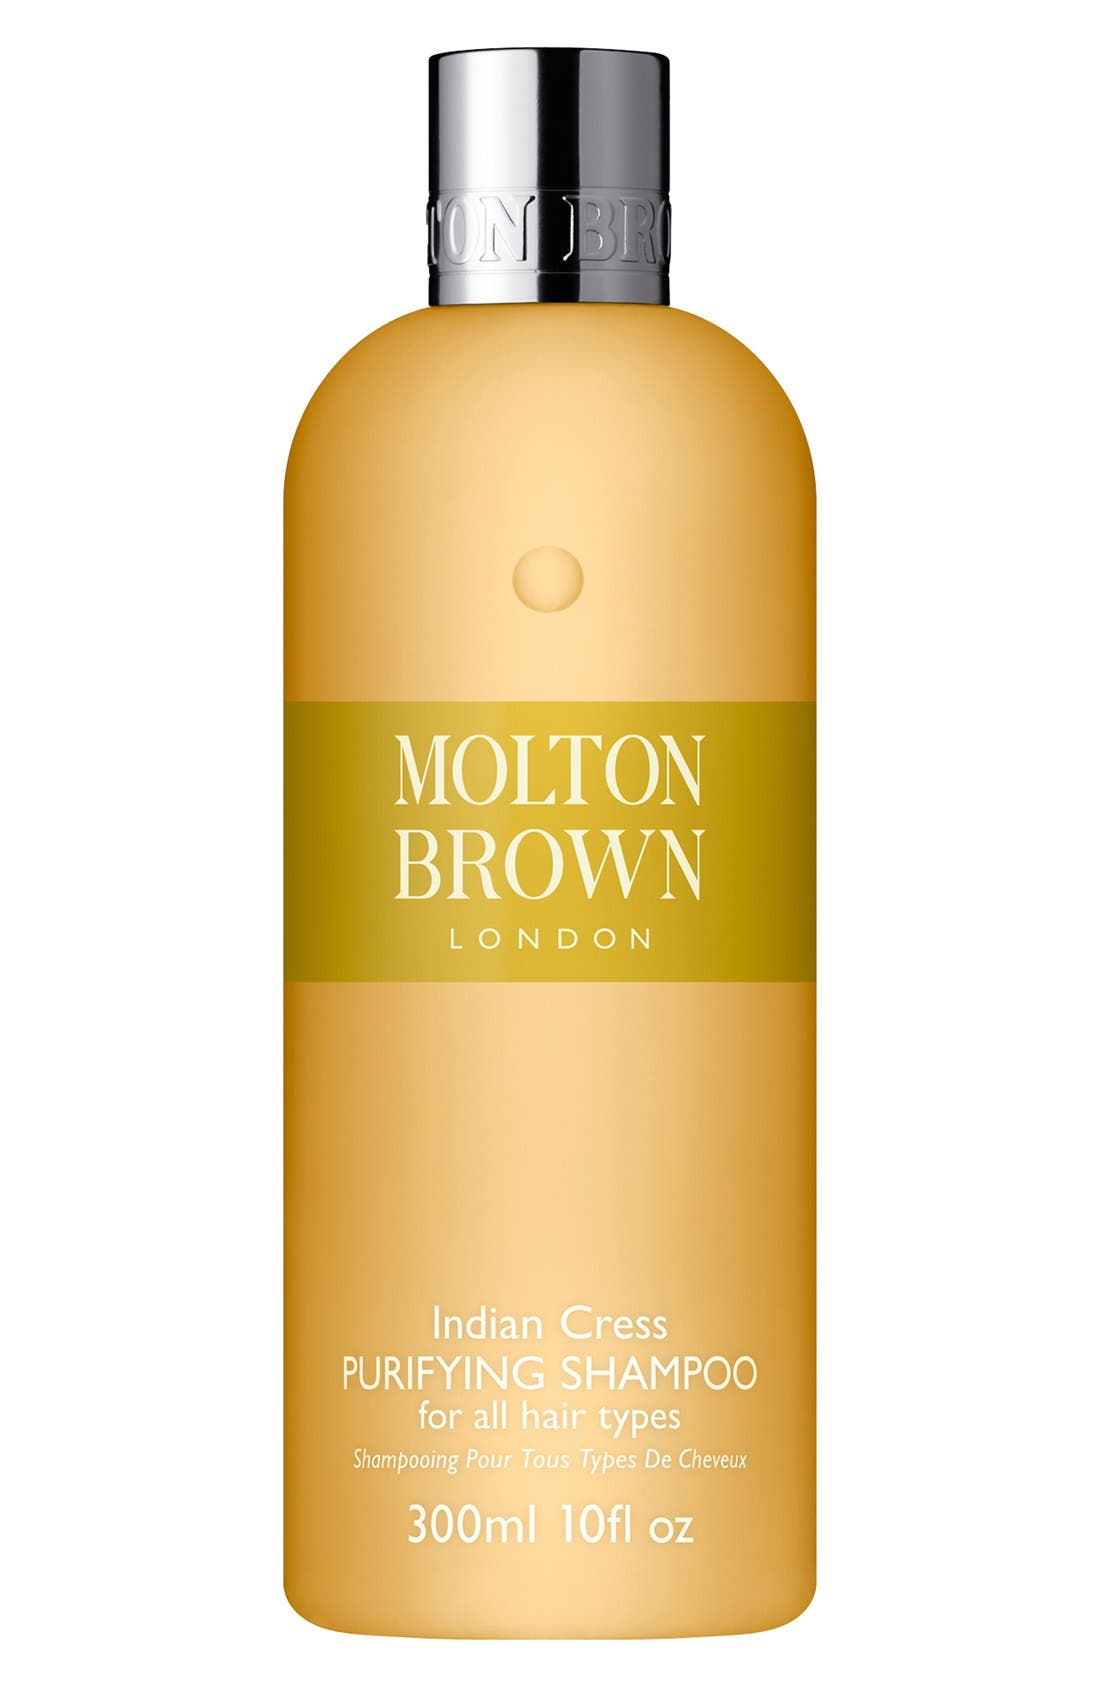 MOLTON BROWN London Indian Cress Purifying Shampoo